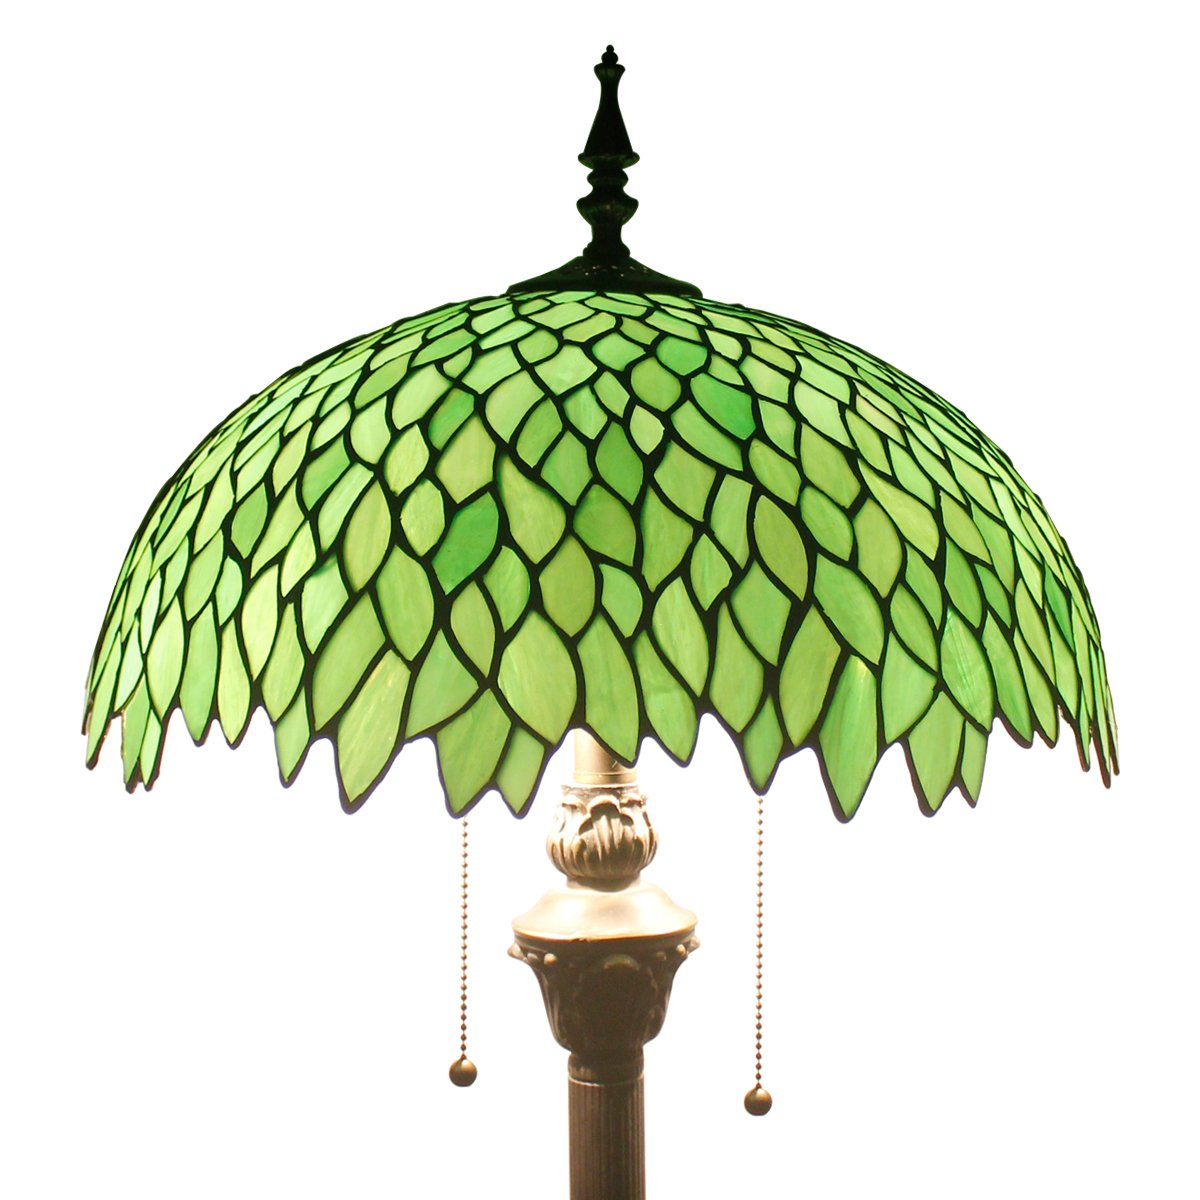 Green Wisteria Tiffany Style Floor Standing Lamp 64 Inch Tall Stained Glass Shade 2 Light Pull Chain Antique Base Chain for Bedroom Living Room Lighting Table Set S523 WERFACTORY